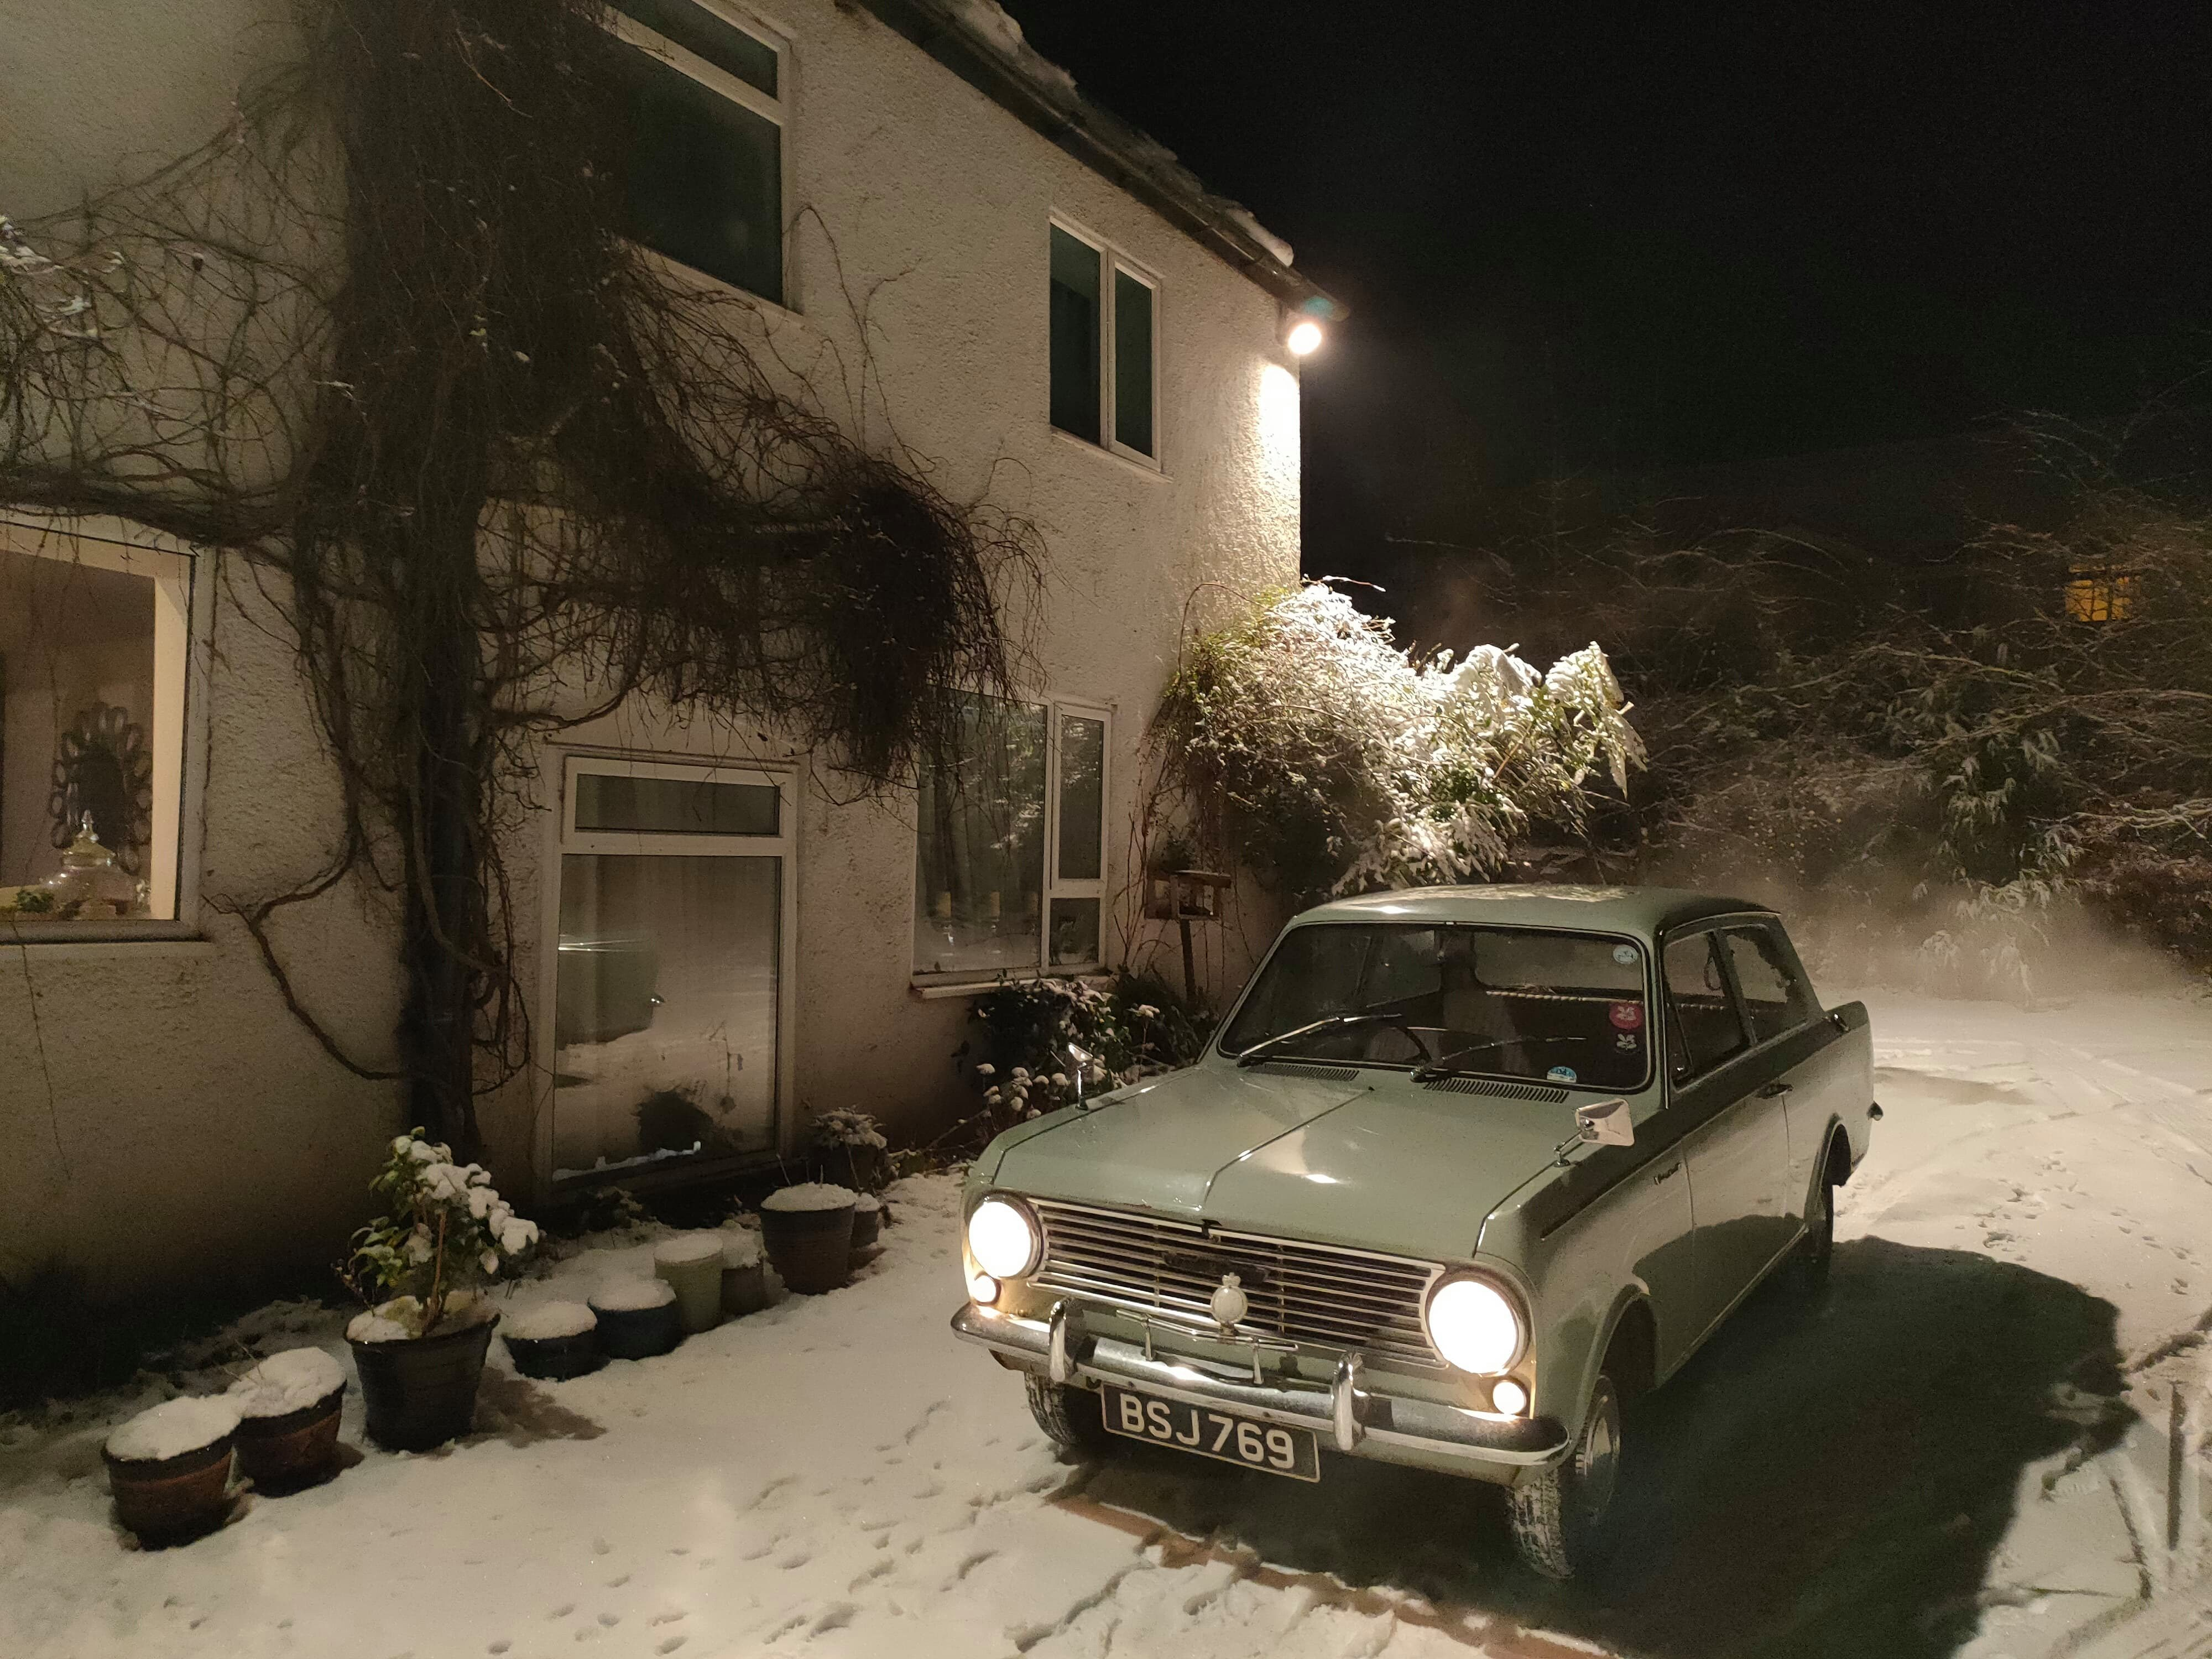 Snowy car and house